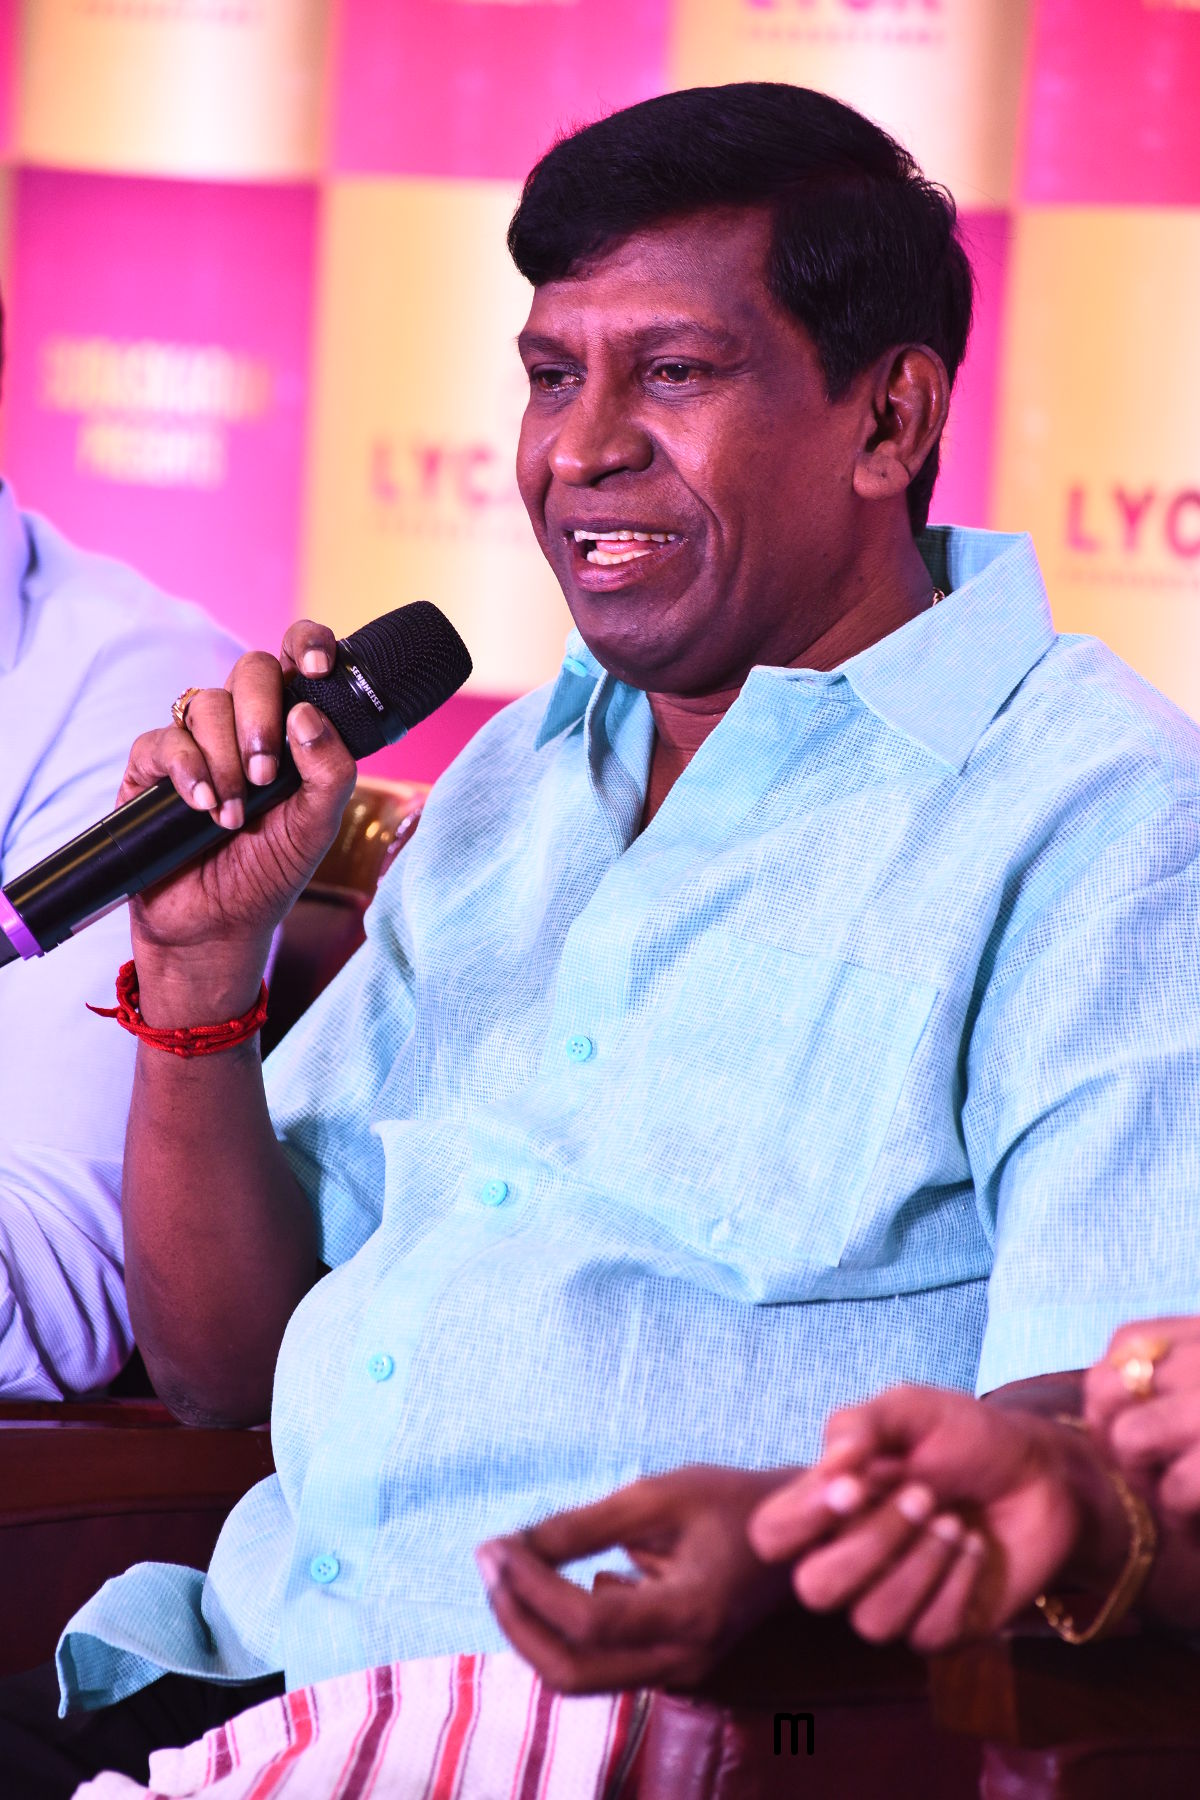 Vadivelu ambition is to make people happy for as long as live